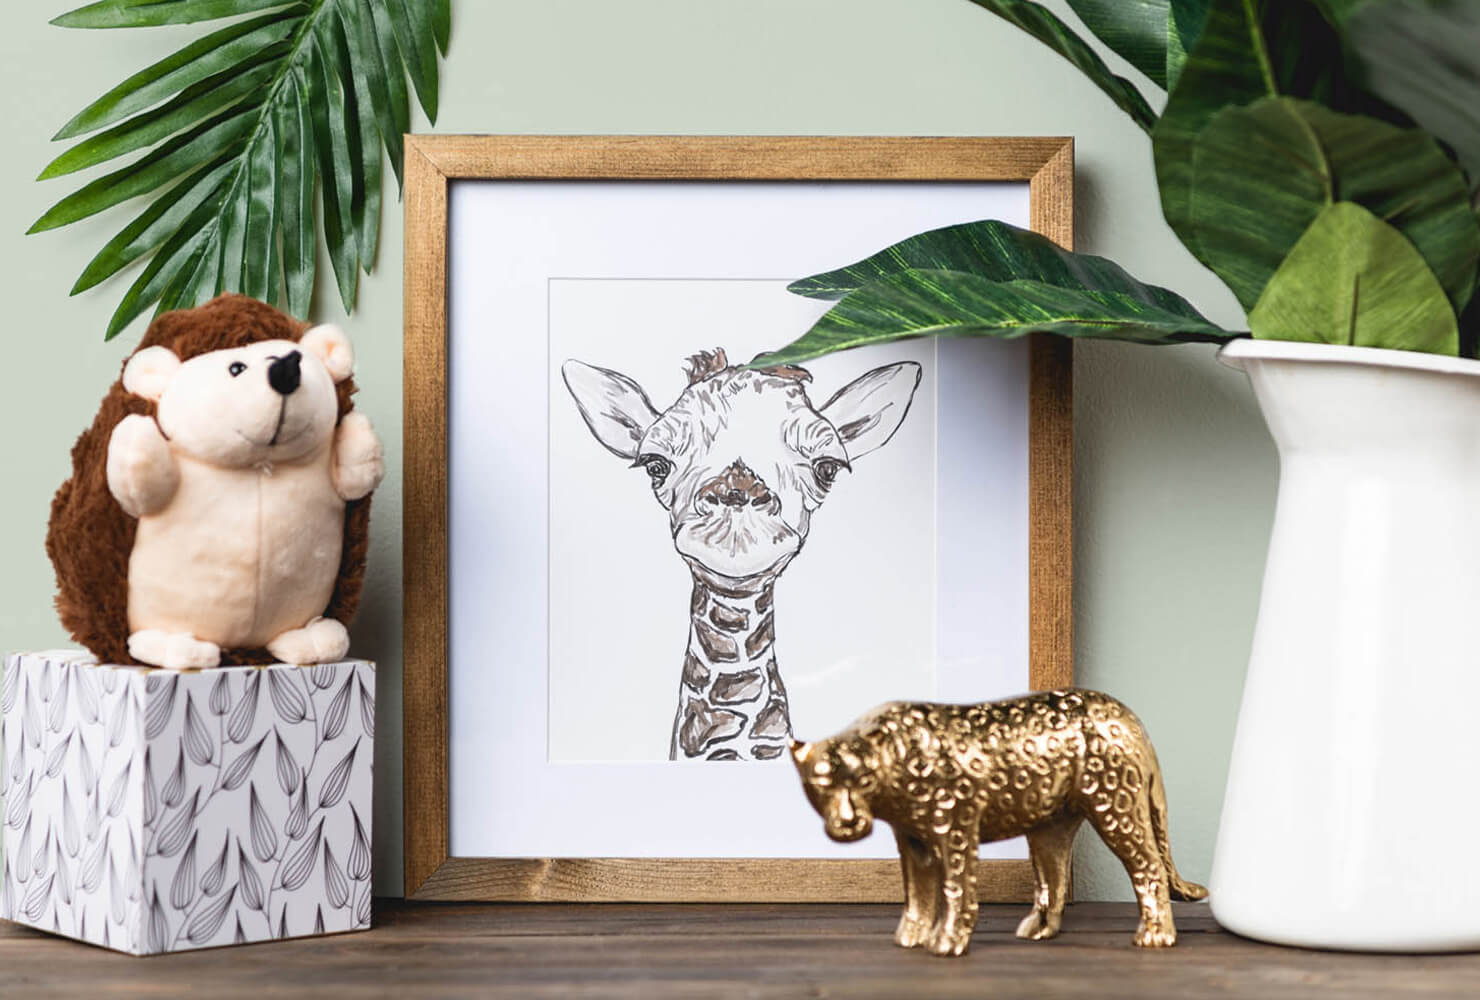 nursery room ideas giraffe photo frame.